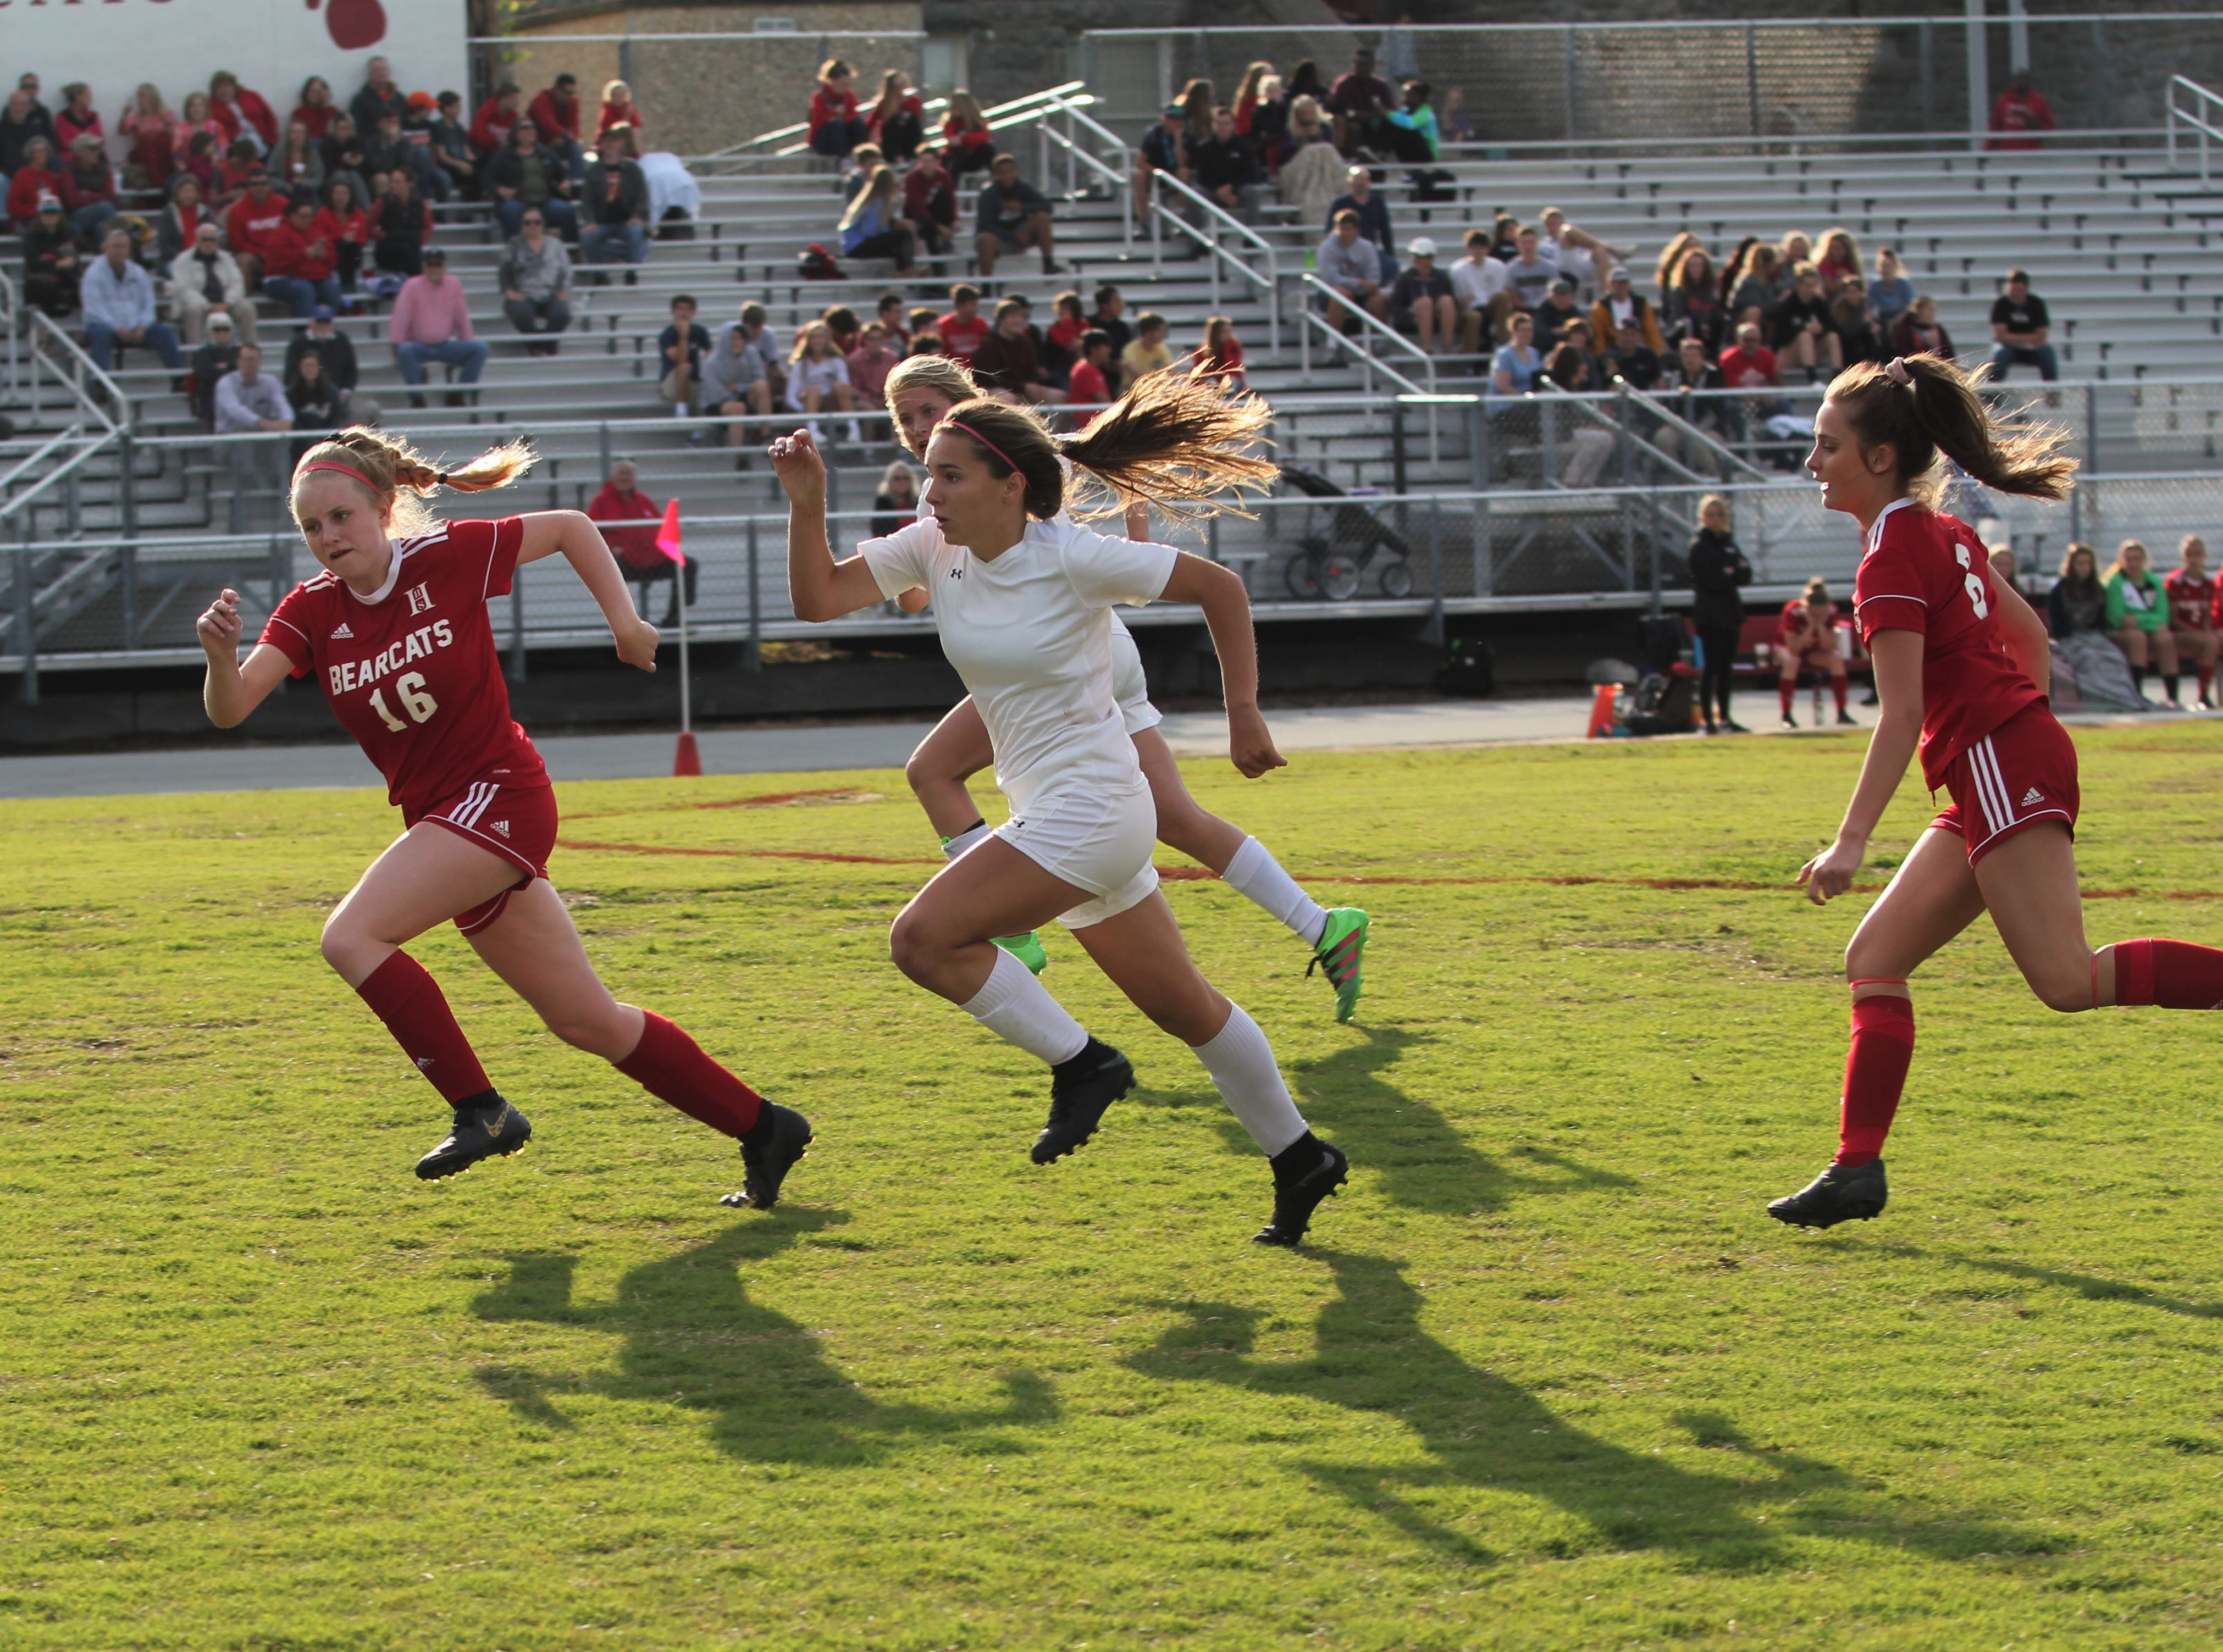 Warlassies fall in third round to Hendersonville